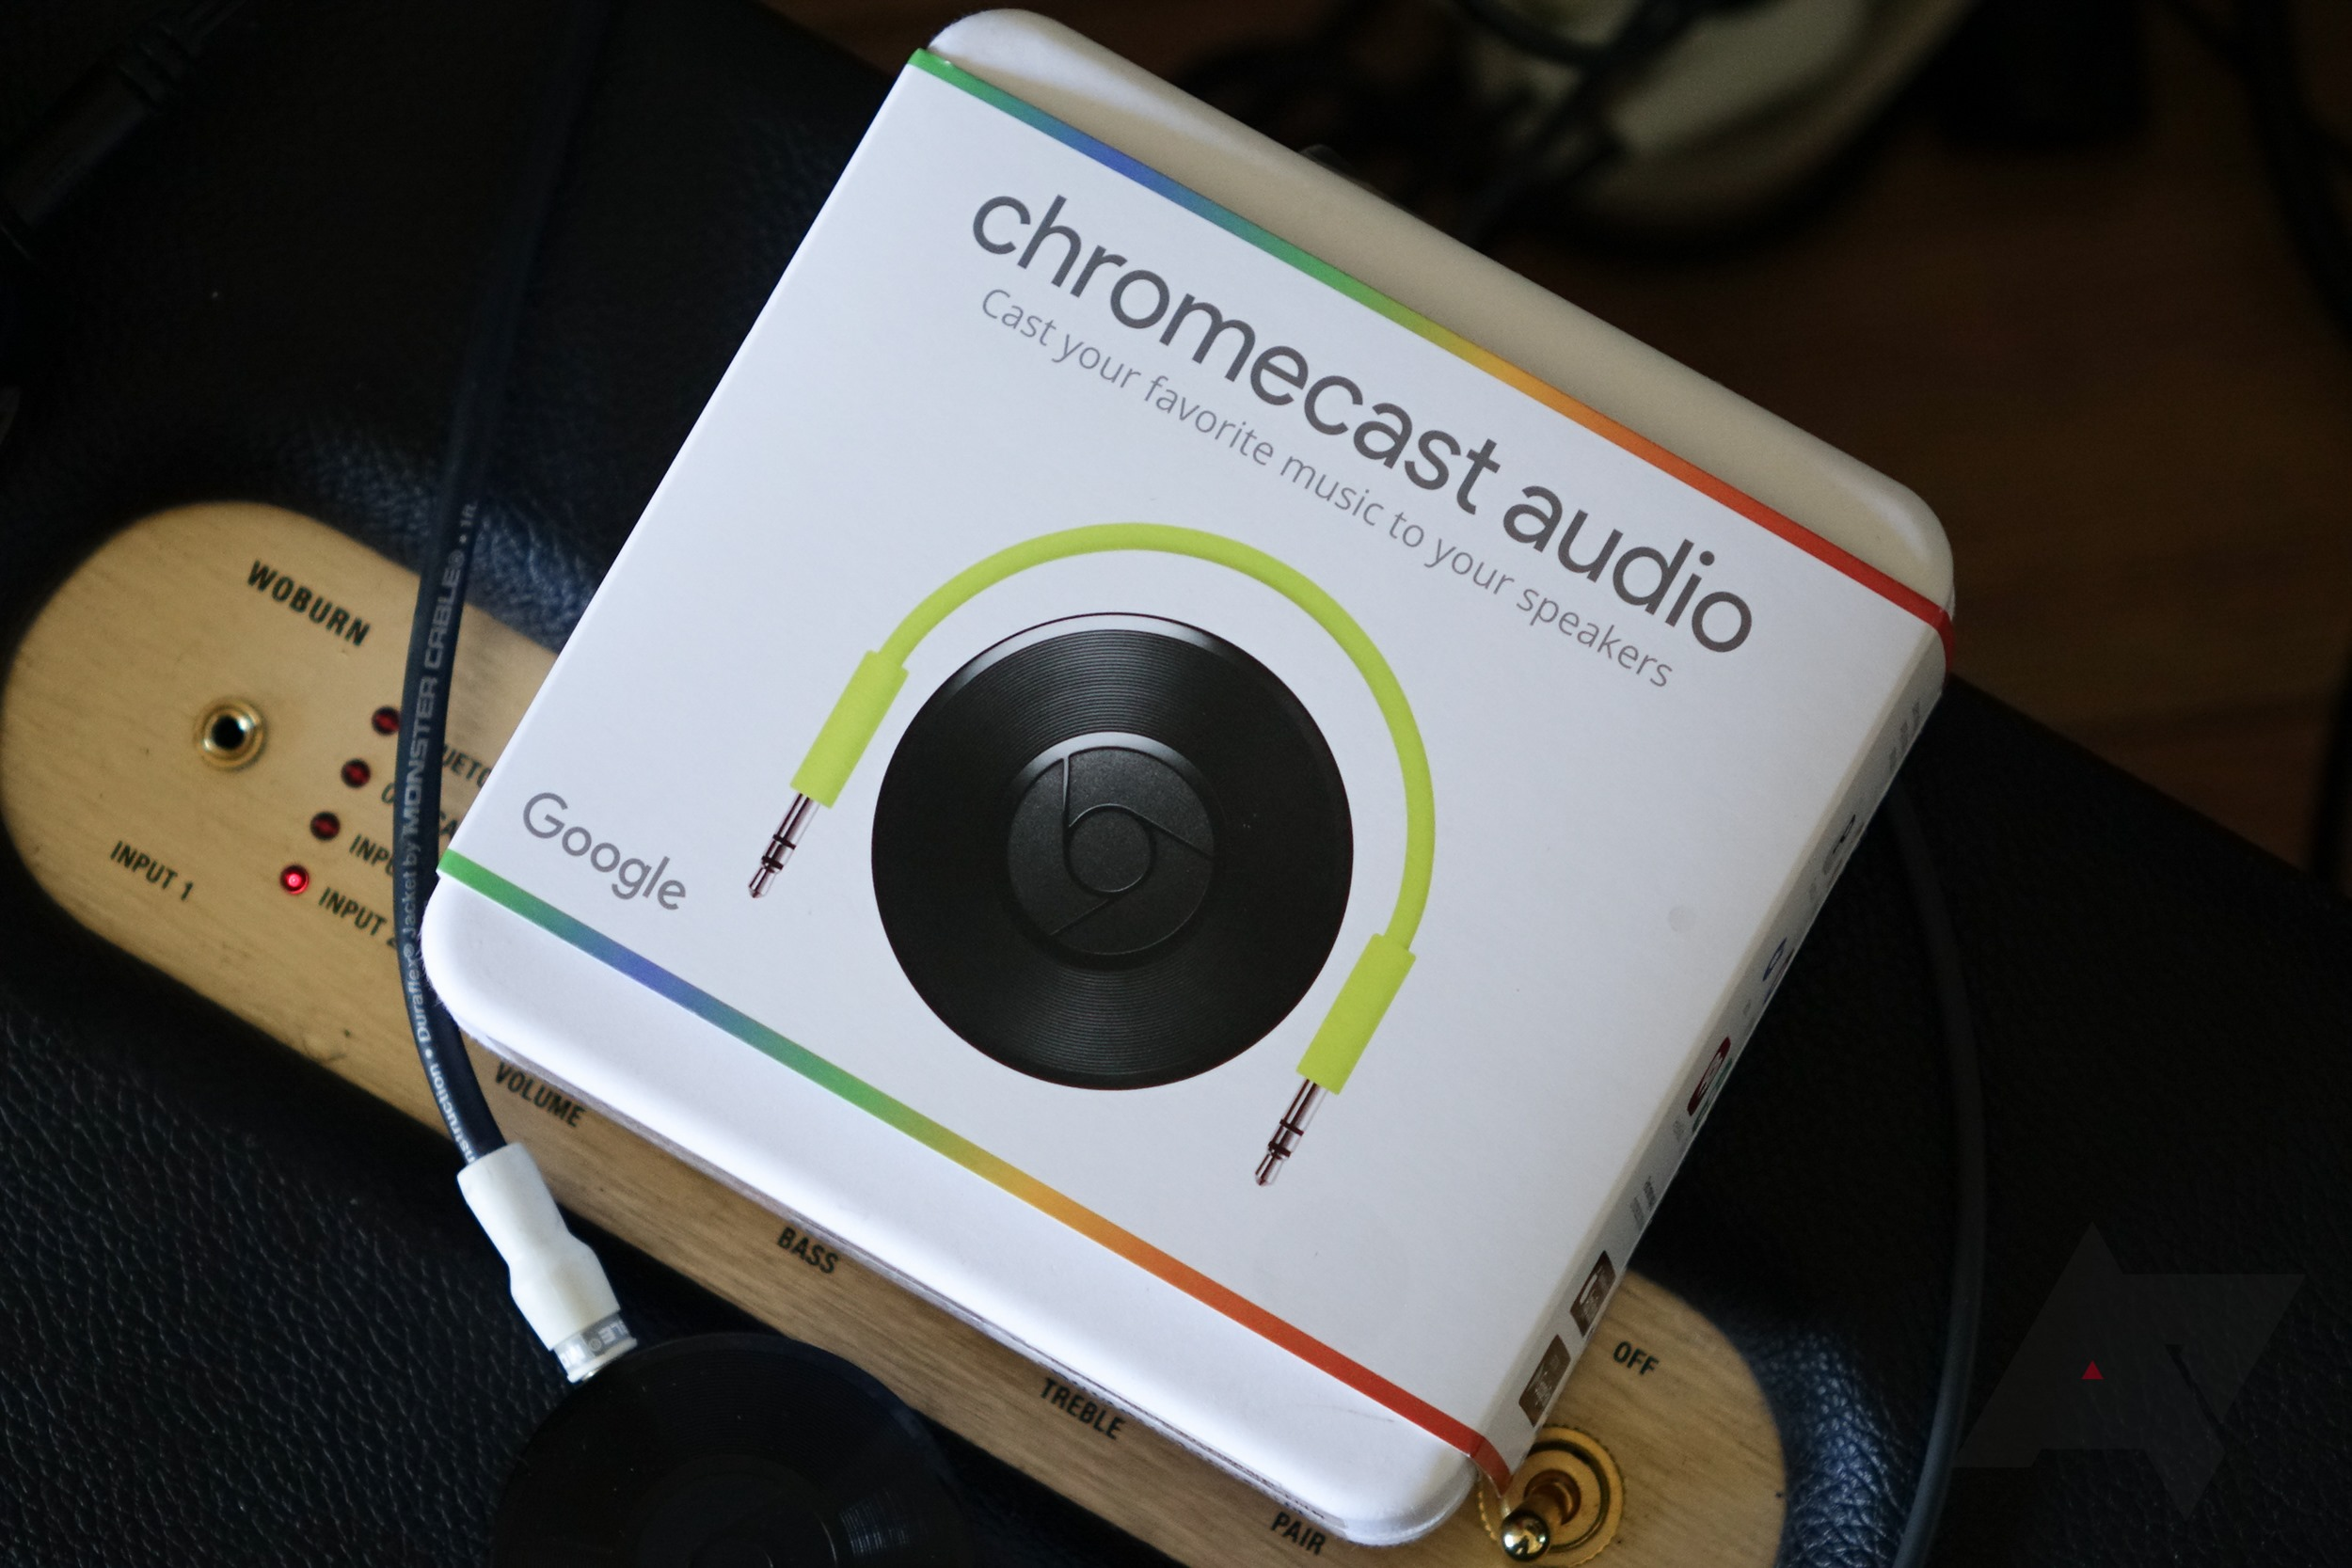 cast amazon prime to chromecast from android